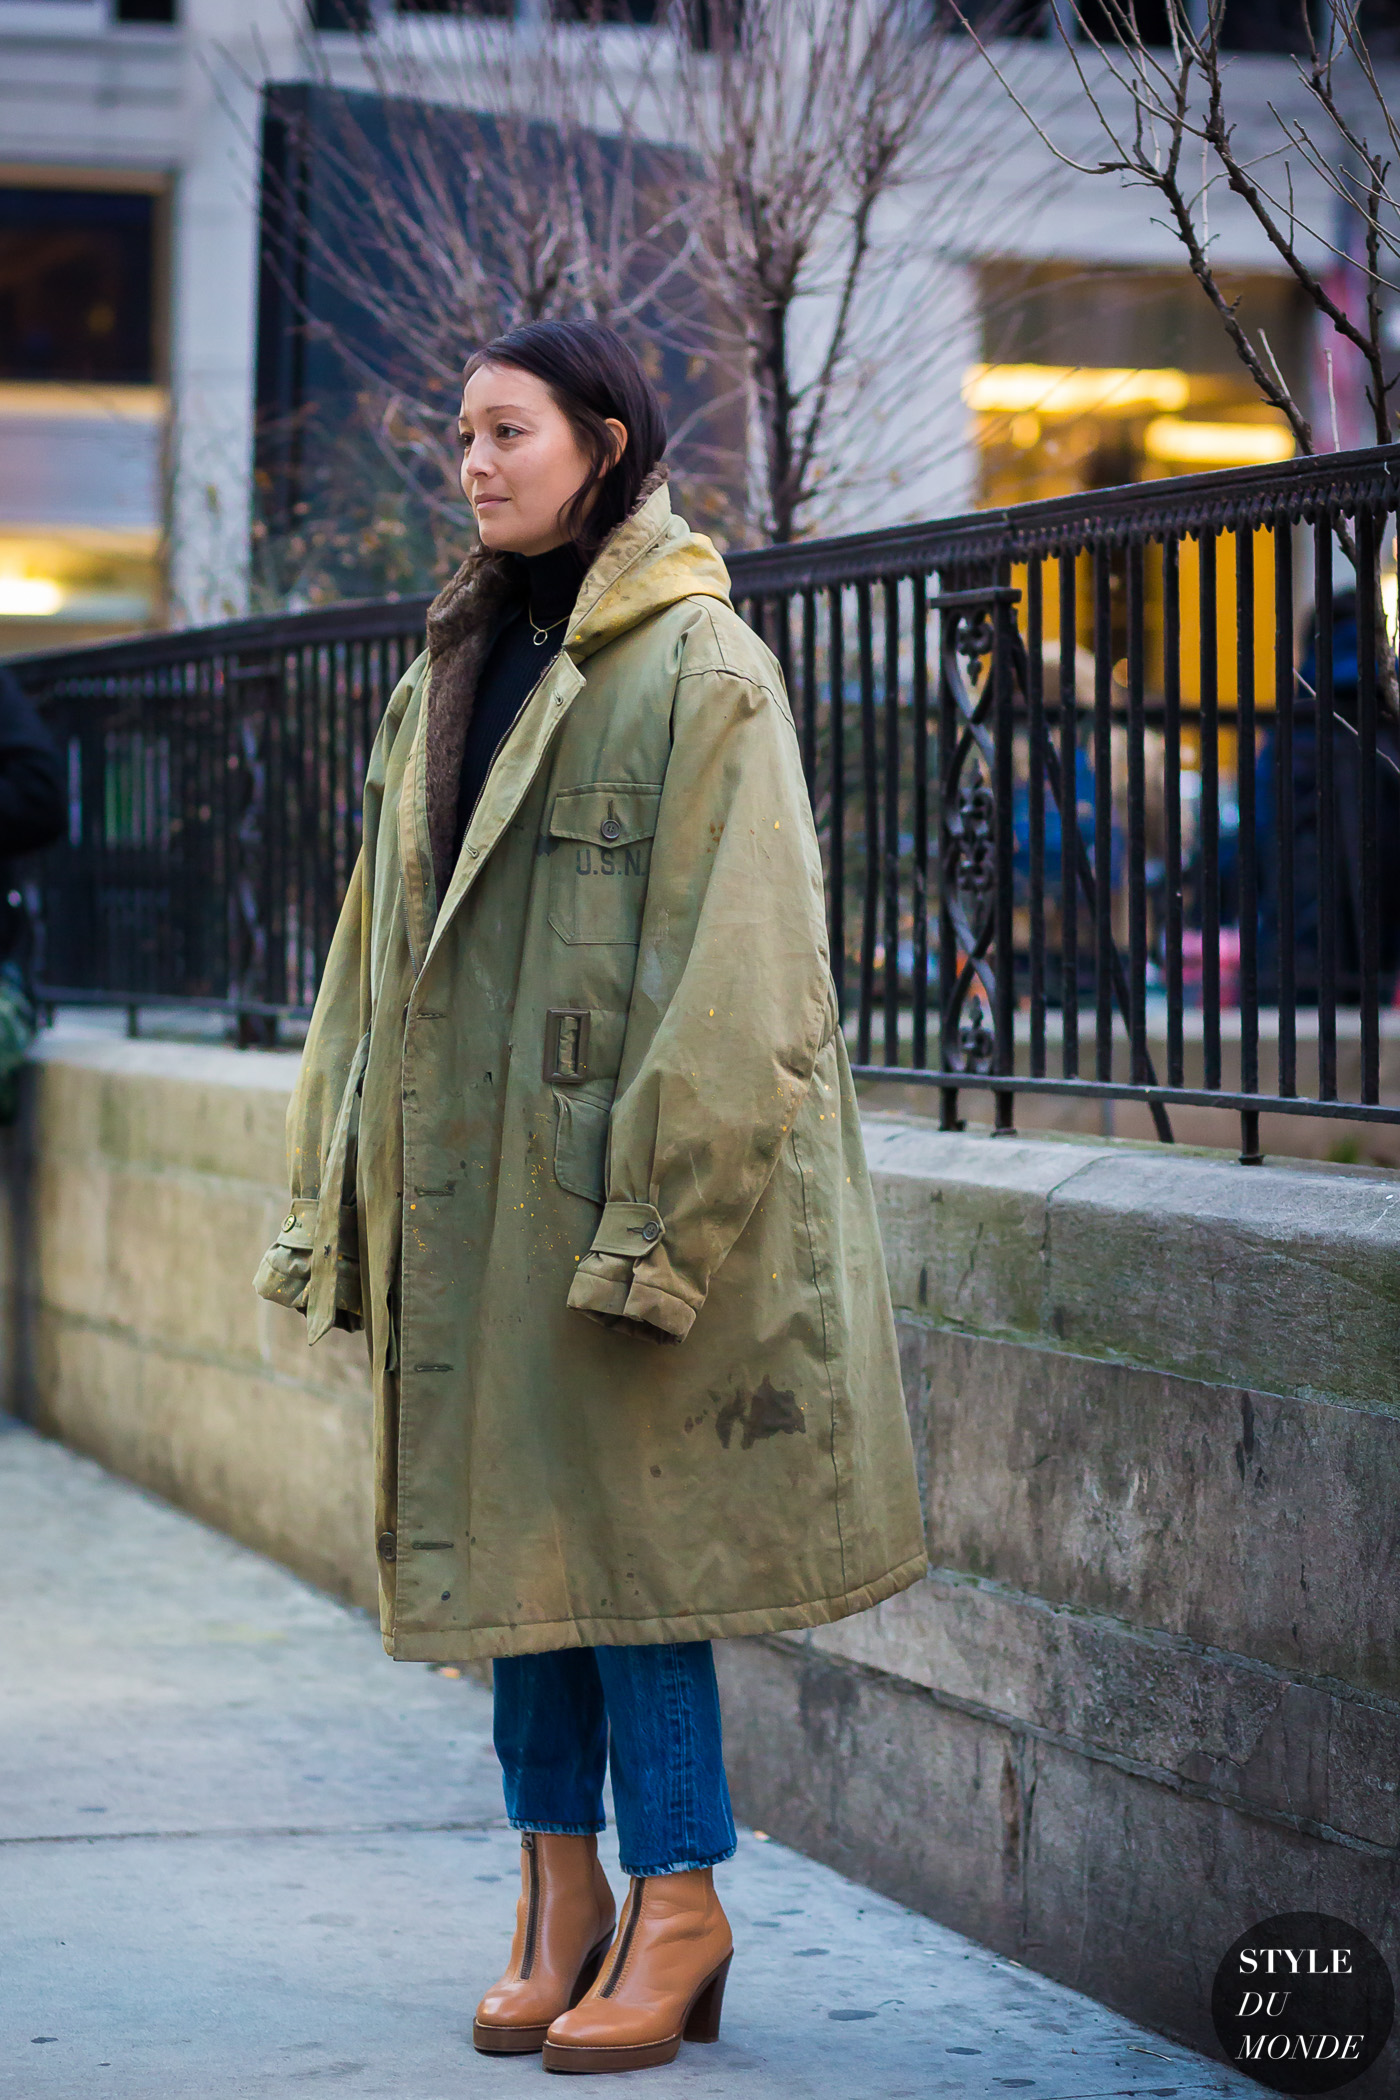 Rachael Wang Street Style Street Fashion Streetsnaps by STYLEDUMONDE Street Style Fashion Photography